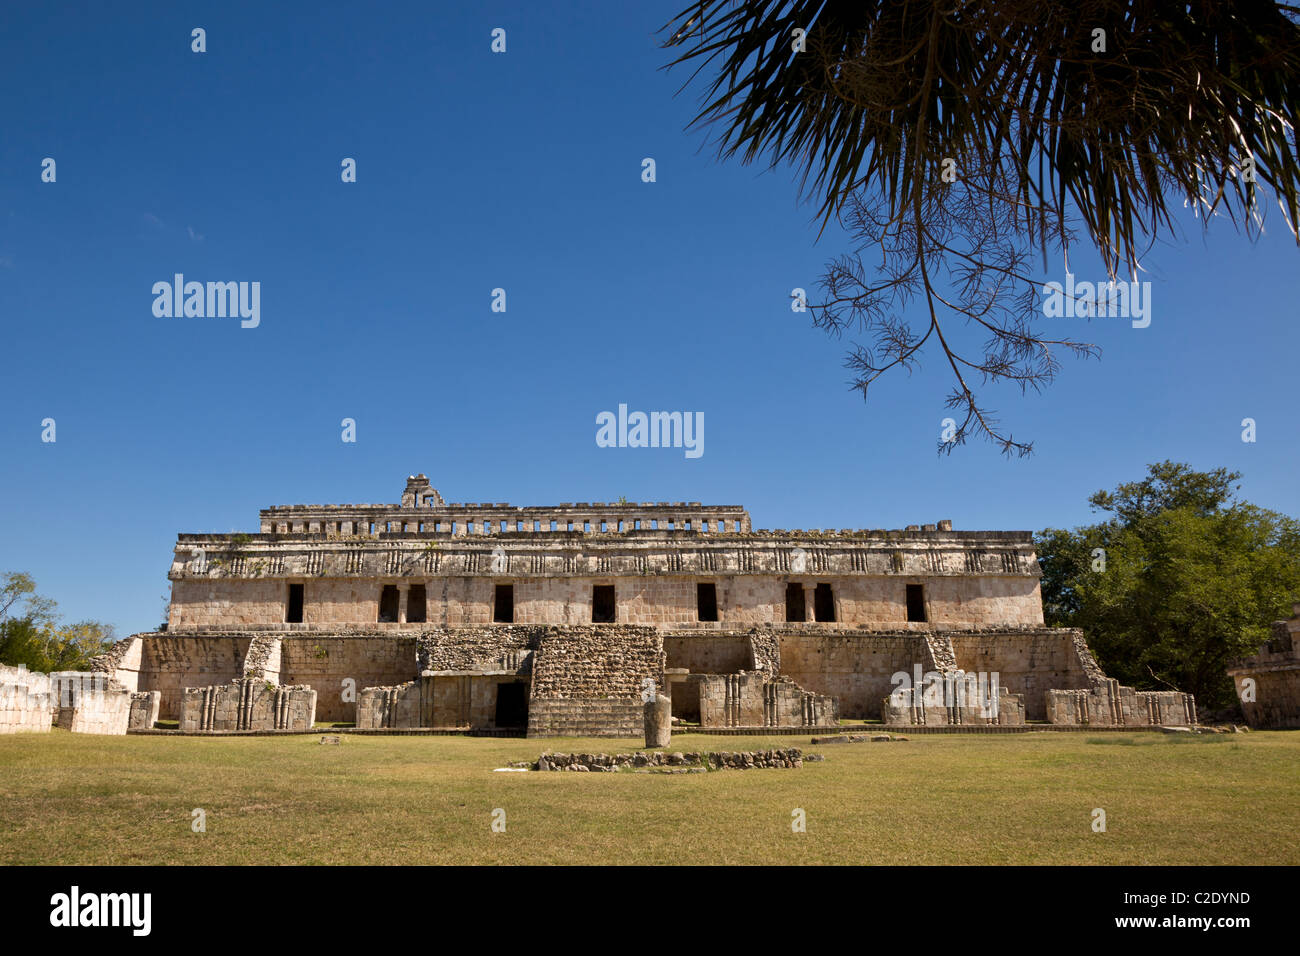 El Palacio or The Palace at the Puuc style Maya ruins of Kabah along the Puuc Route in the Yucatan Peninsula, Mexico. - Stock Image